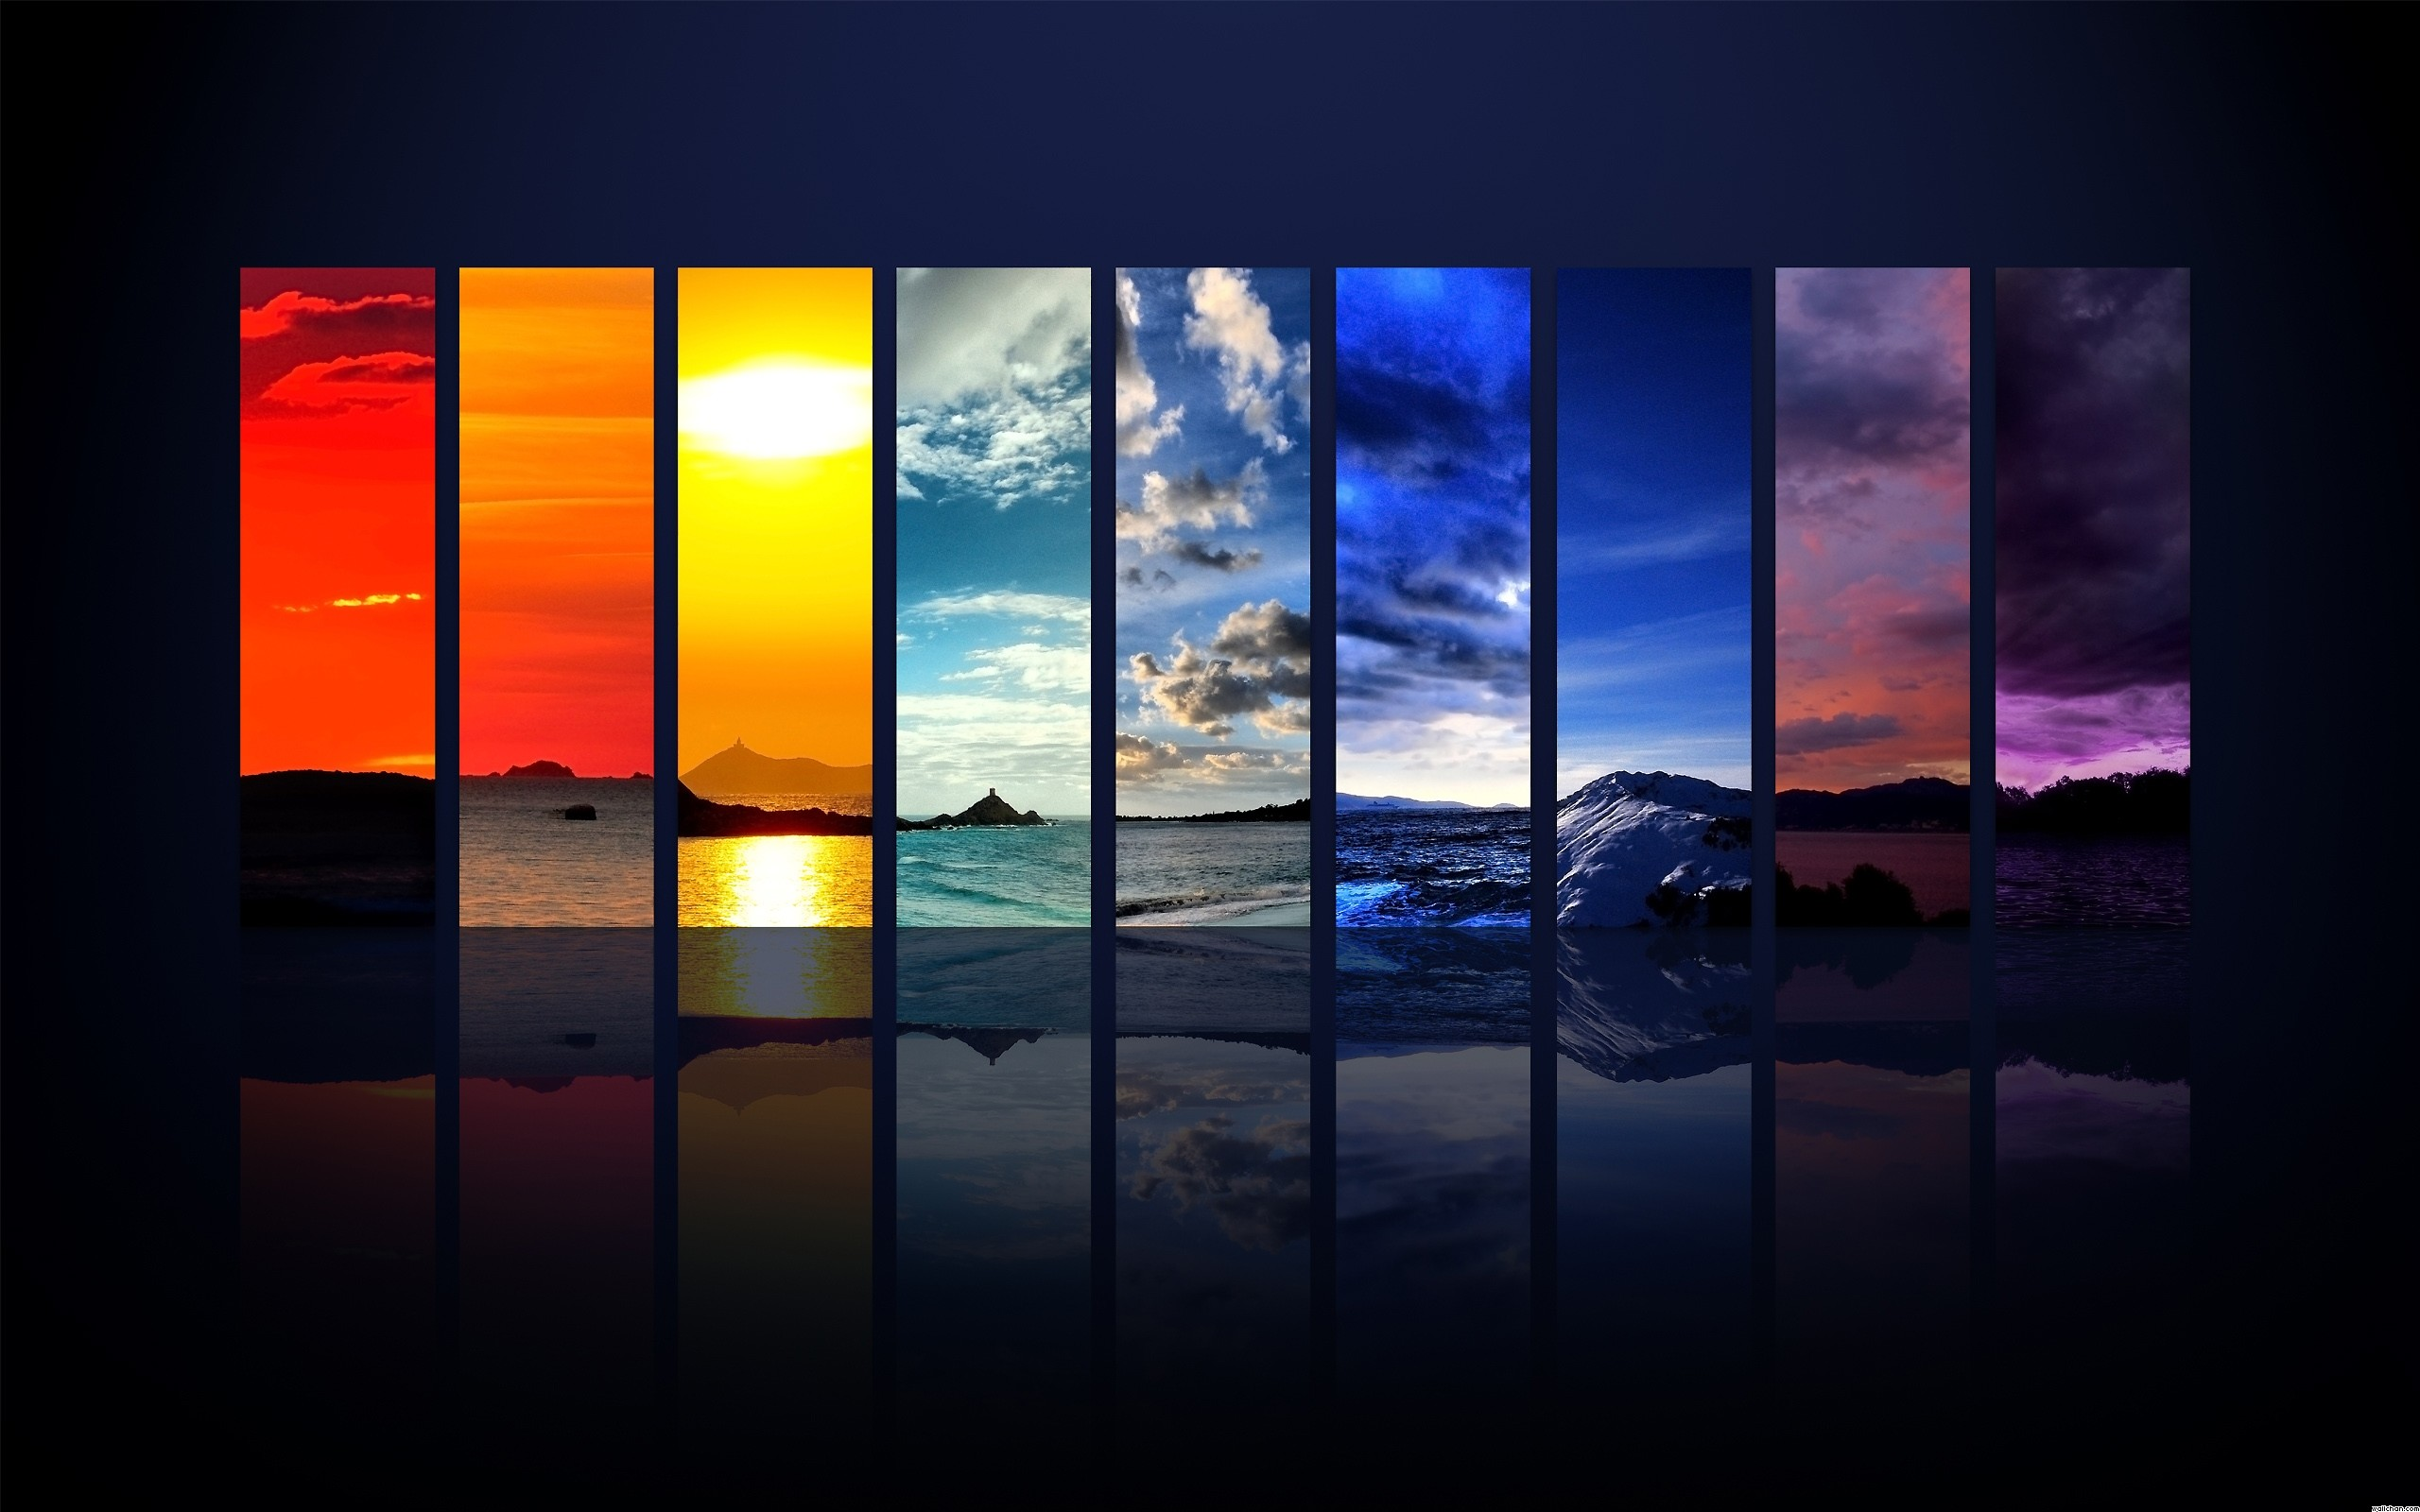 2560x1600 Wallpapers images Rainbow Colors Wallpaper HD wallpaper and background  photos